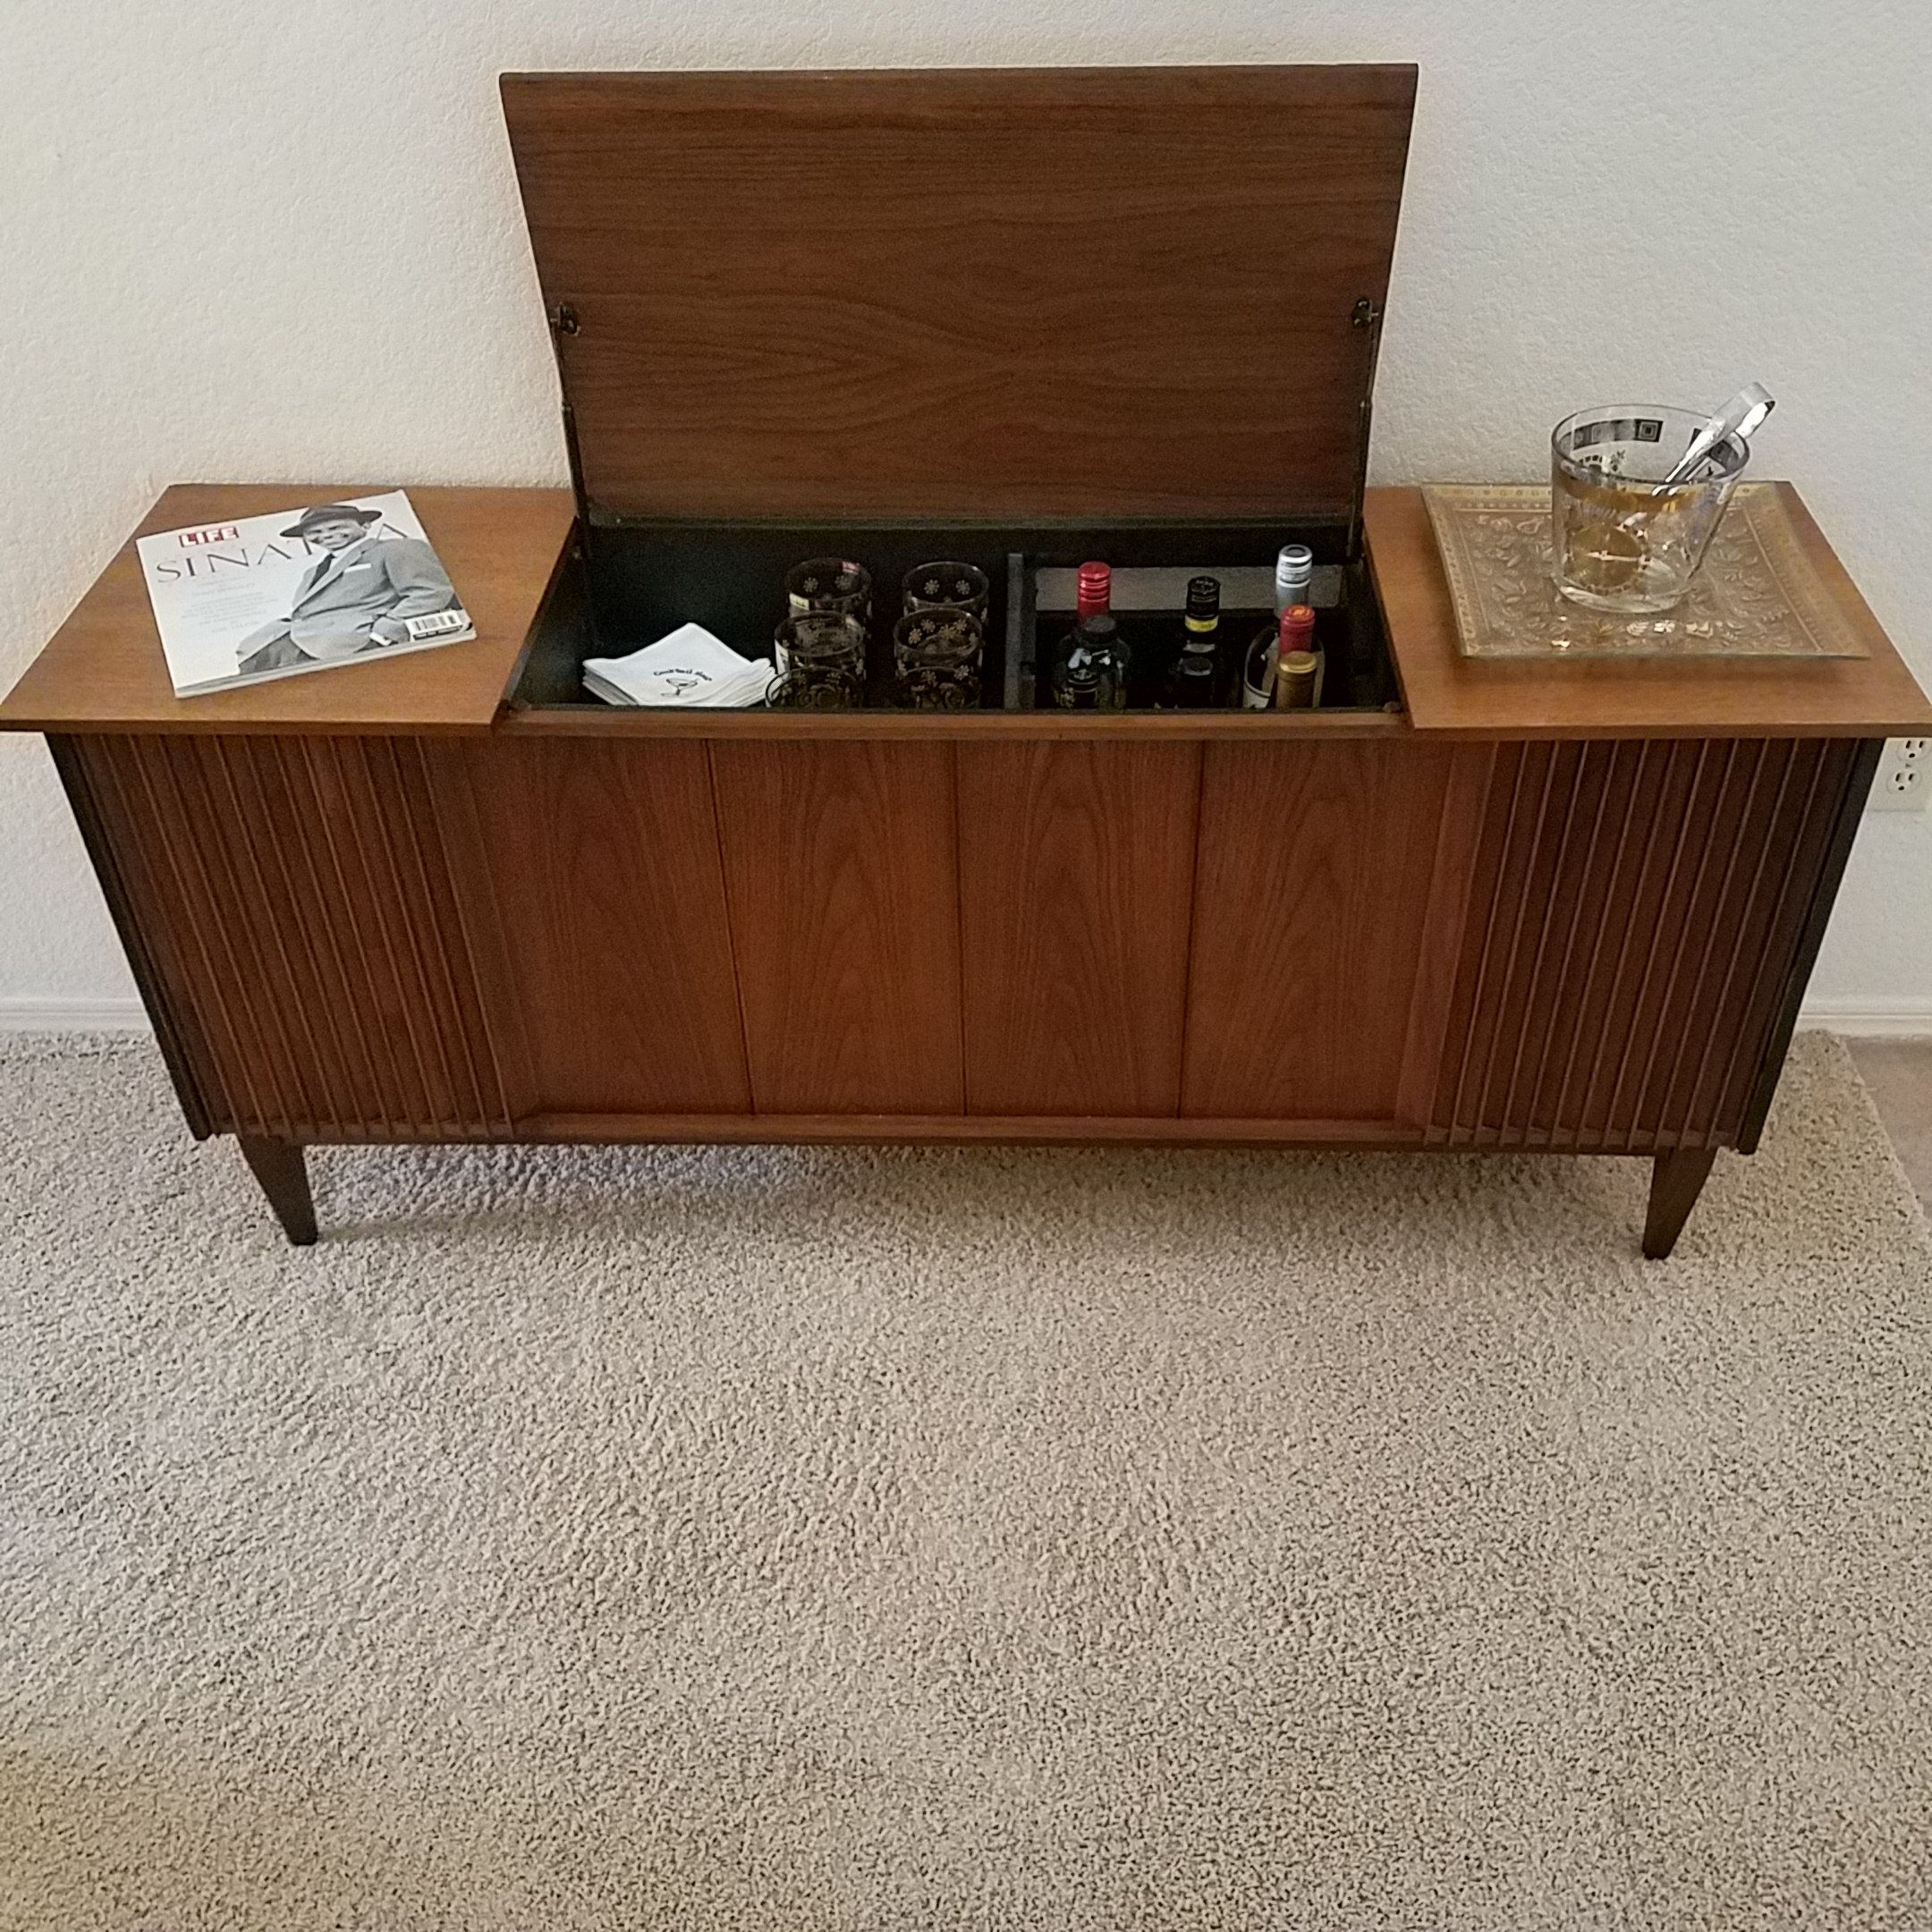 Magnavox Tv Stereo Cabinet Repurposed As A Credenza Available On Phoenix